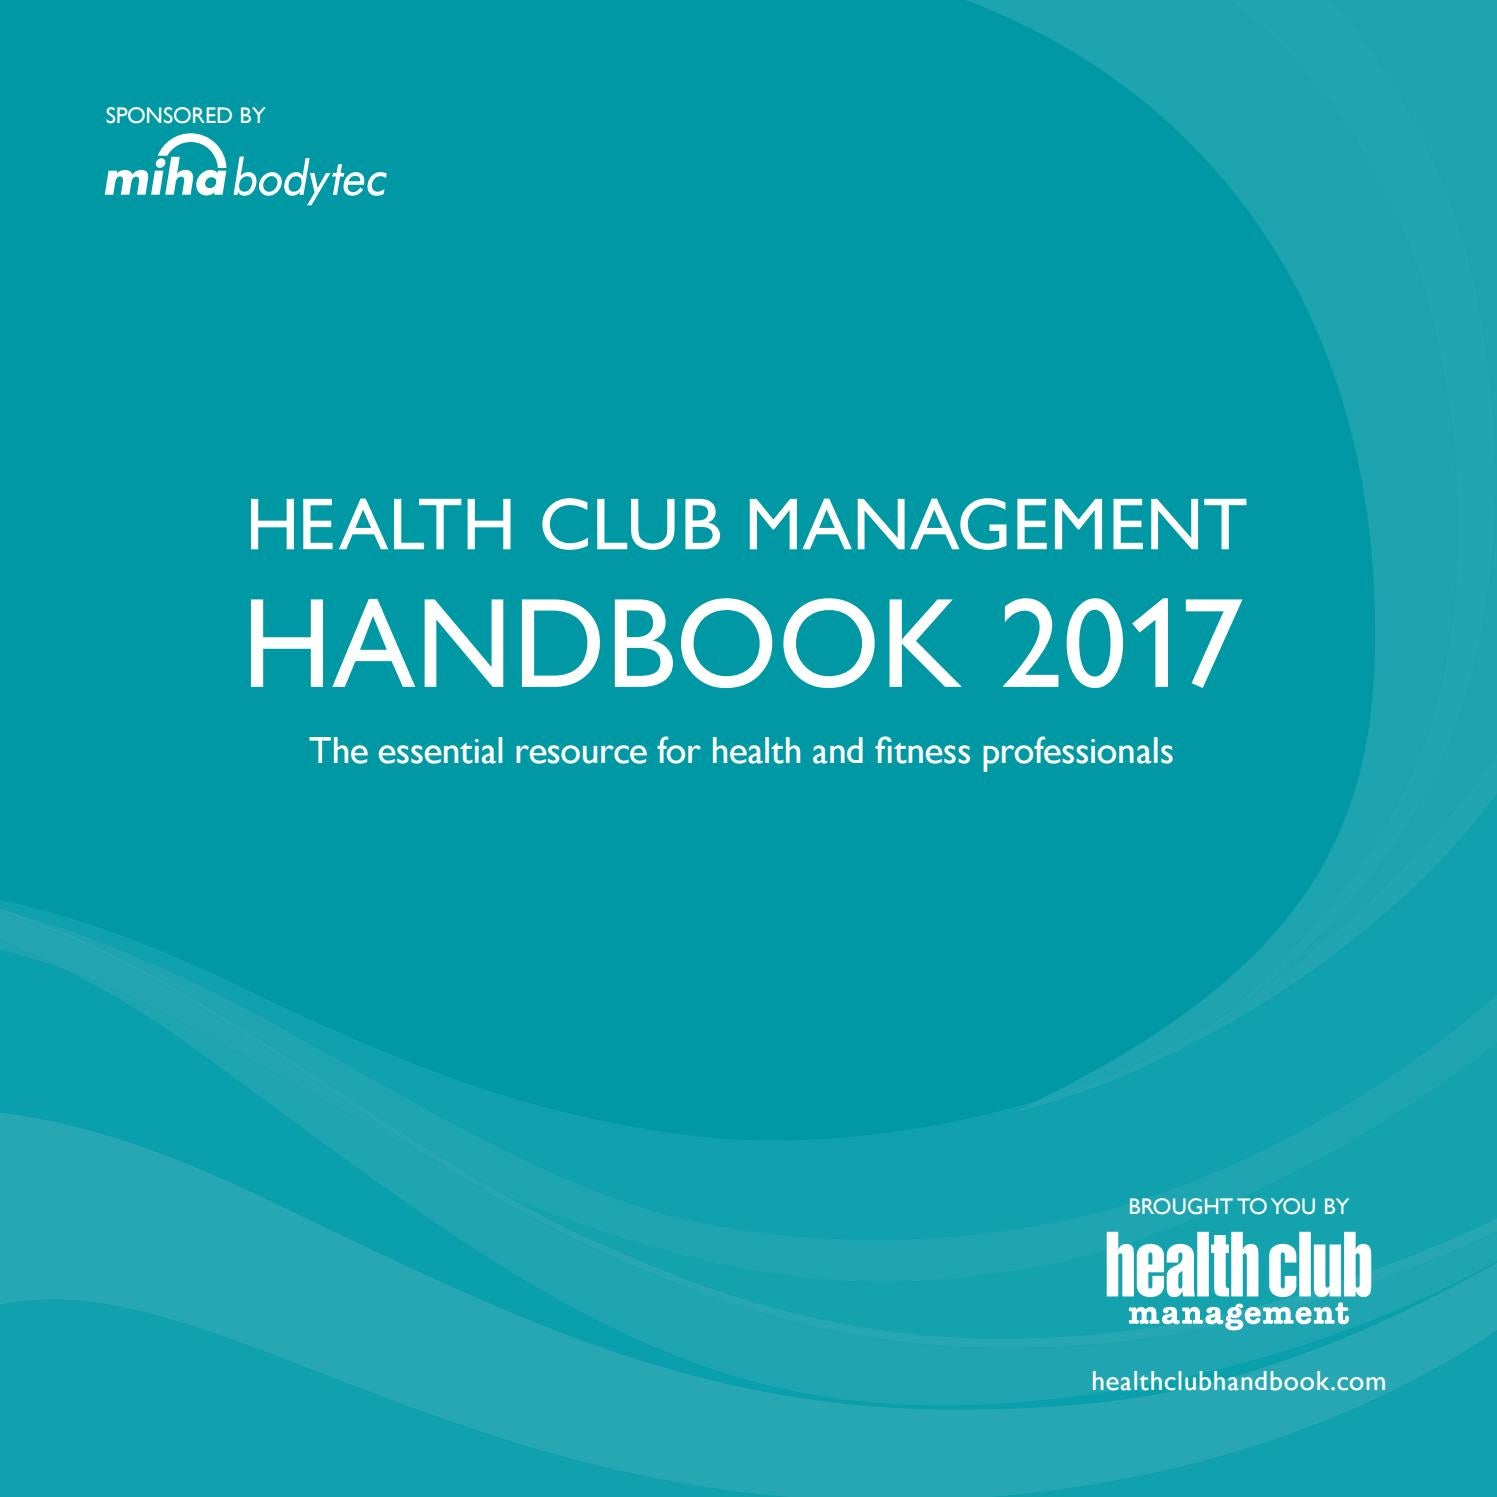 Health Club Management Handbook 2017 By Leisure Media Issuu Inverter Circuit Of Induction Heating Rice Cooker Google Patents